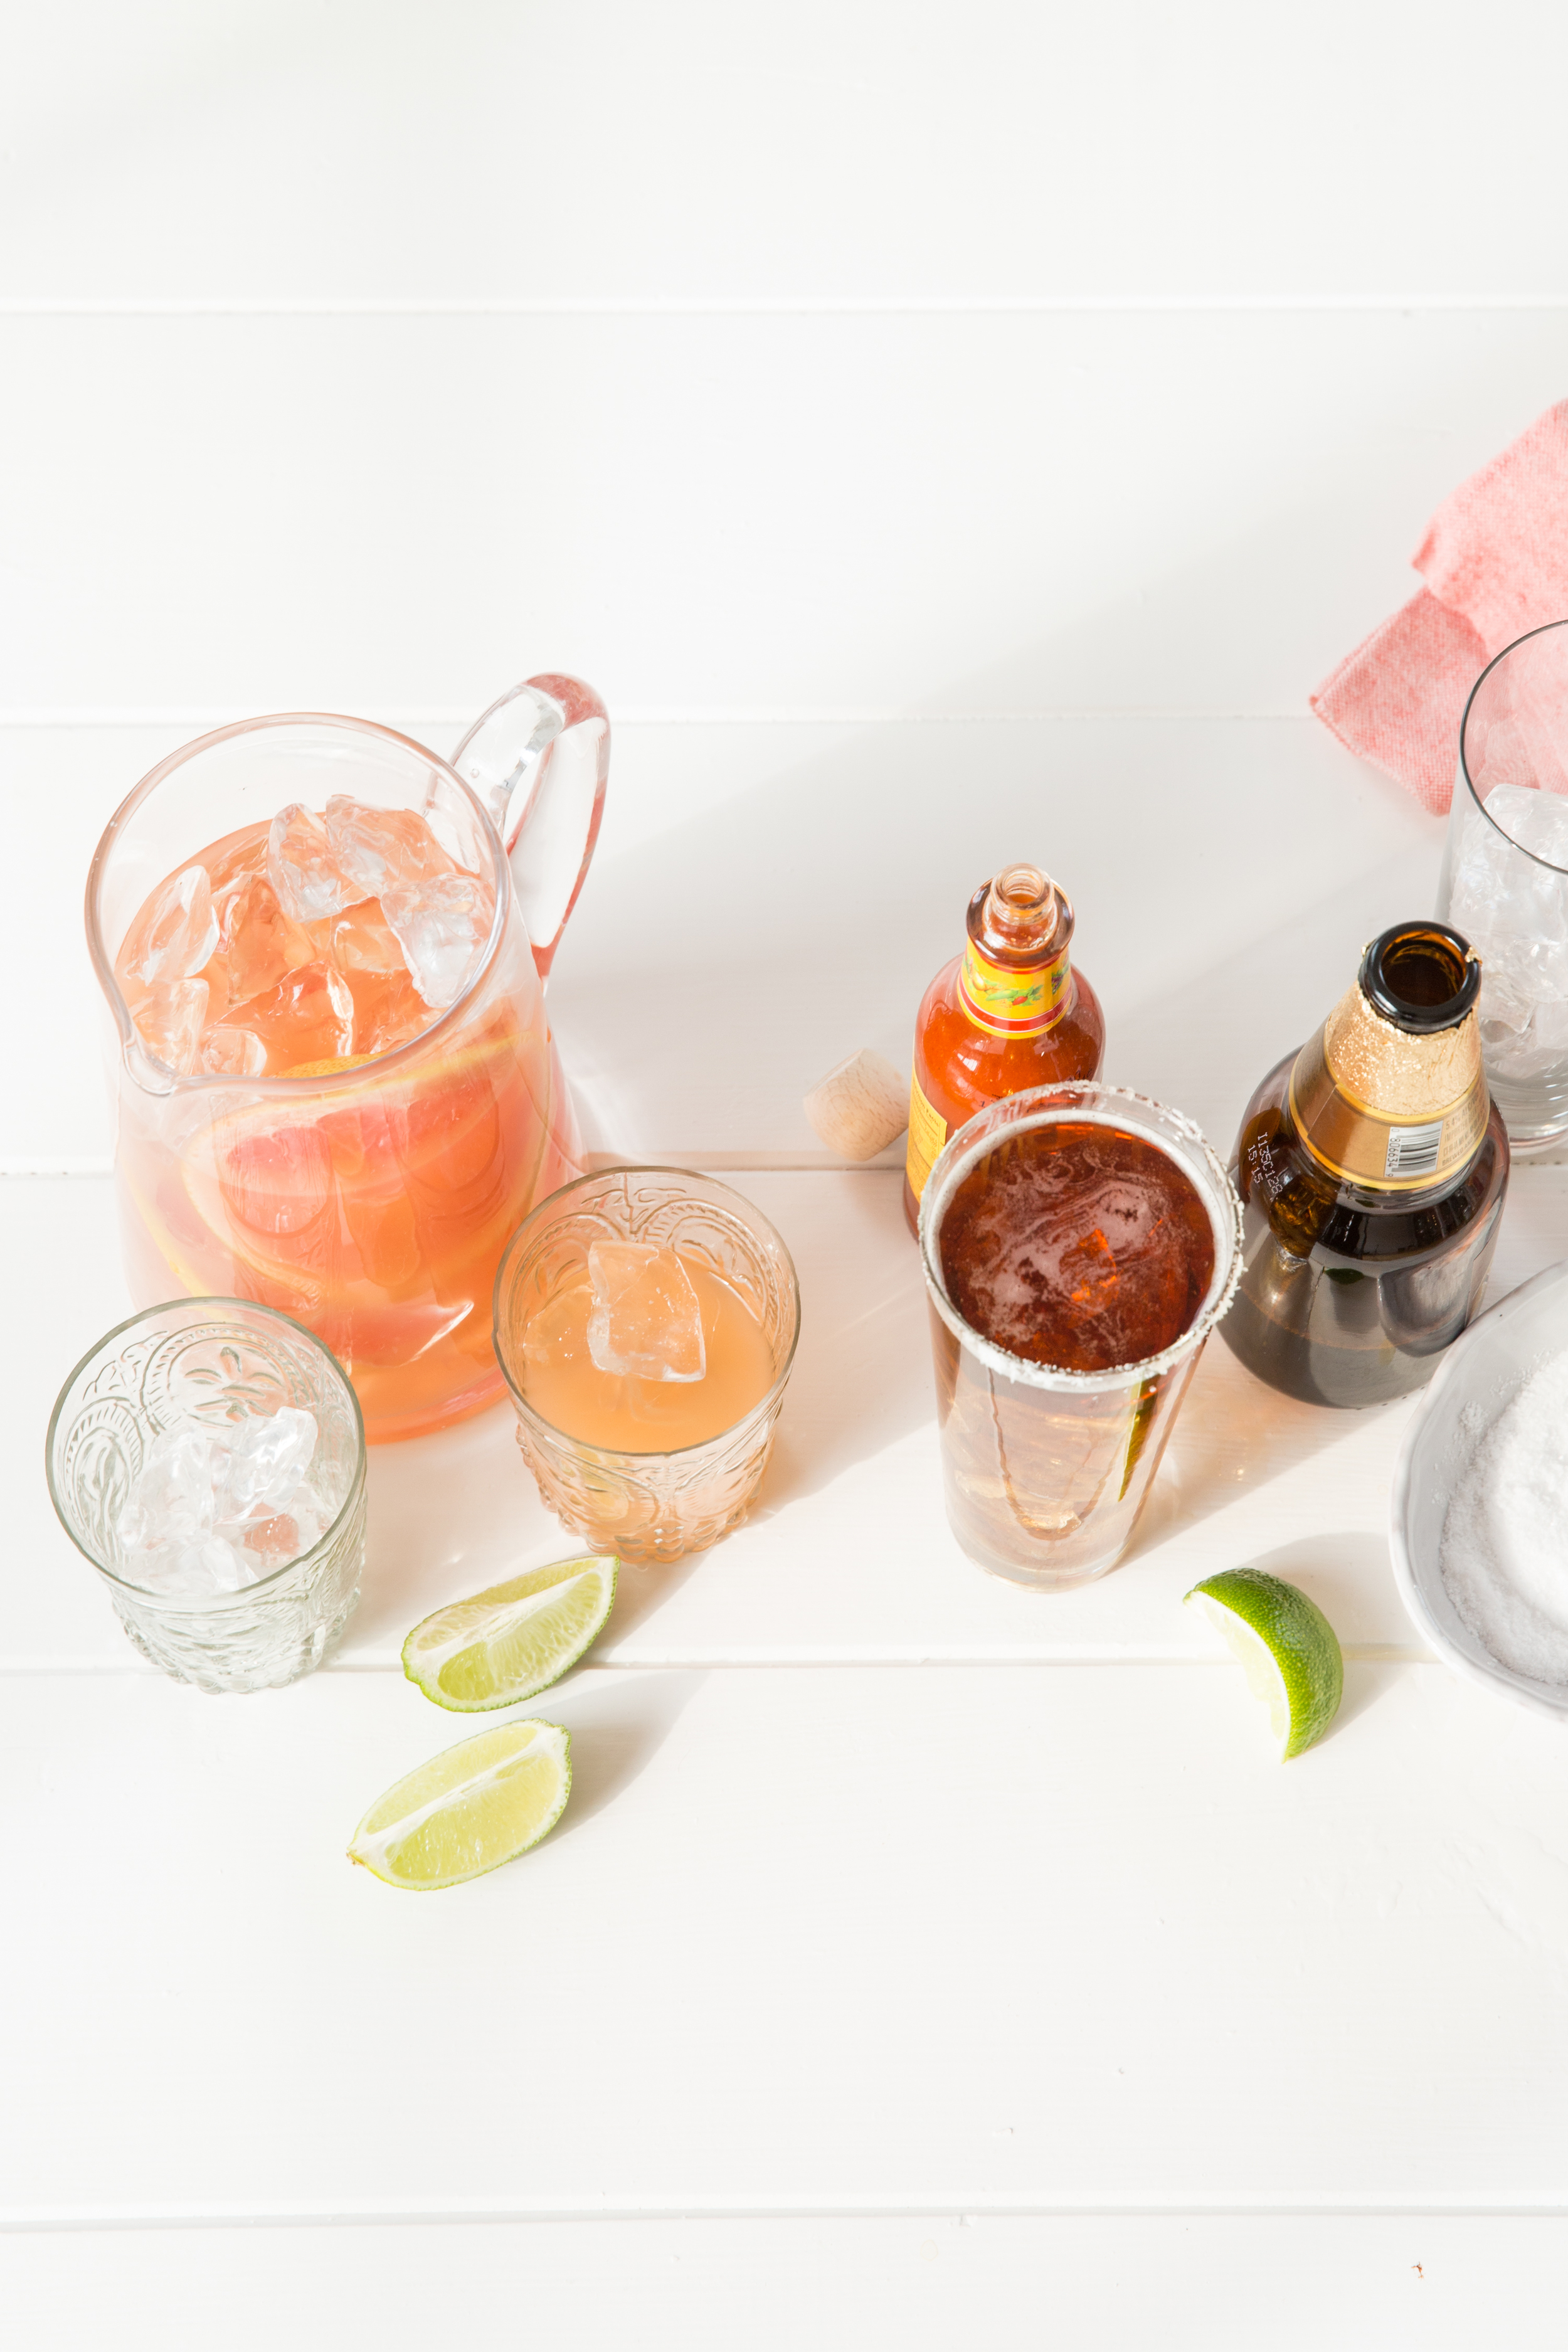 GRybus-HF-TacoParty-Beverages-0133.jpg